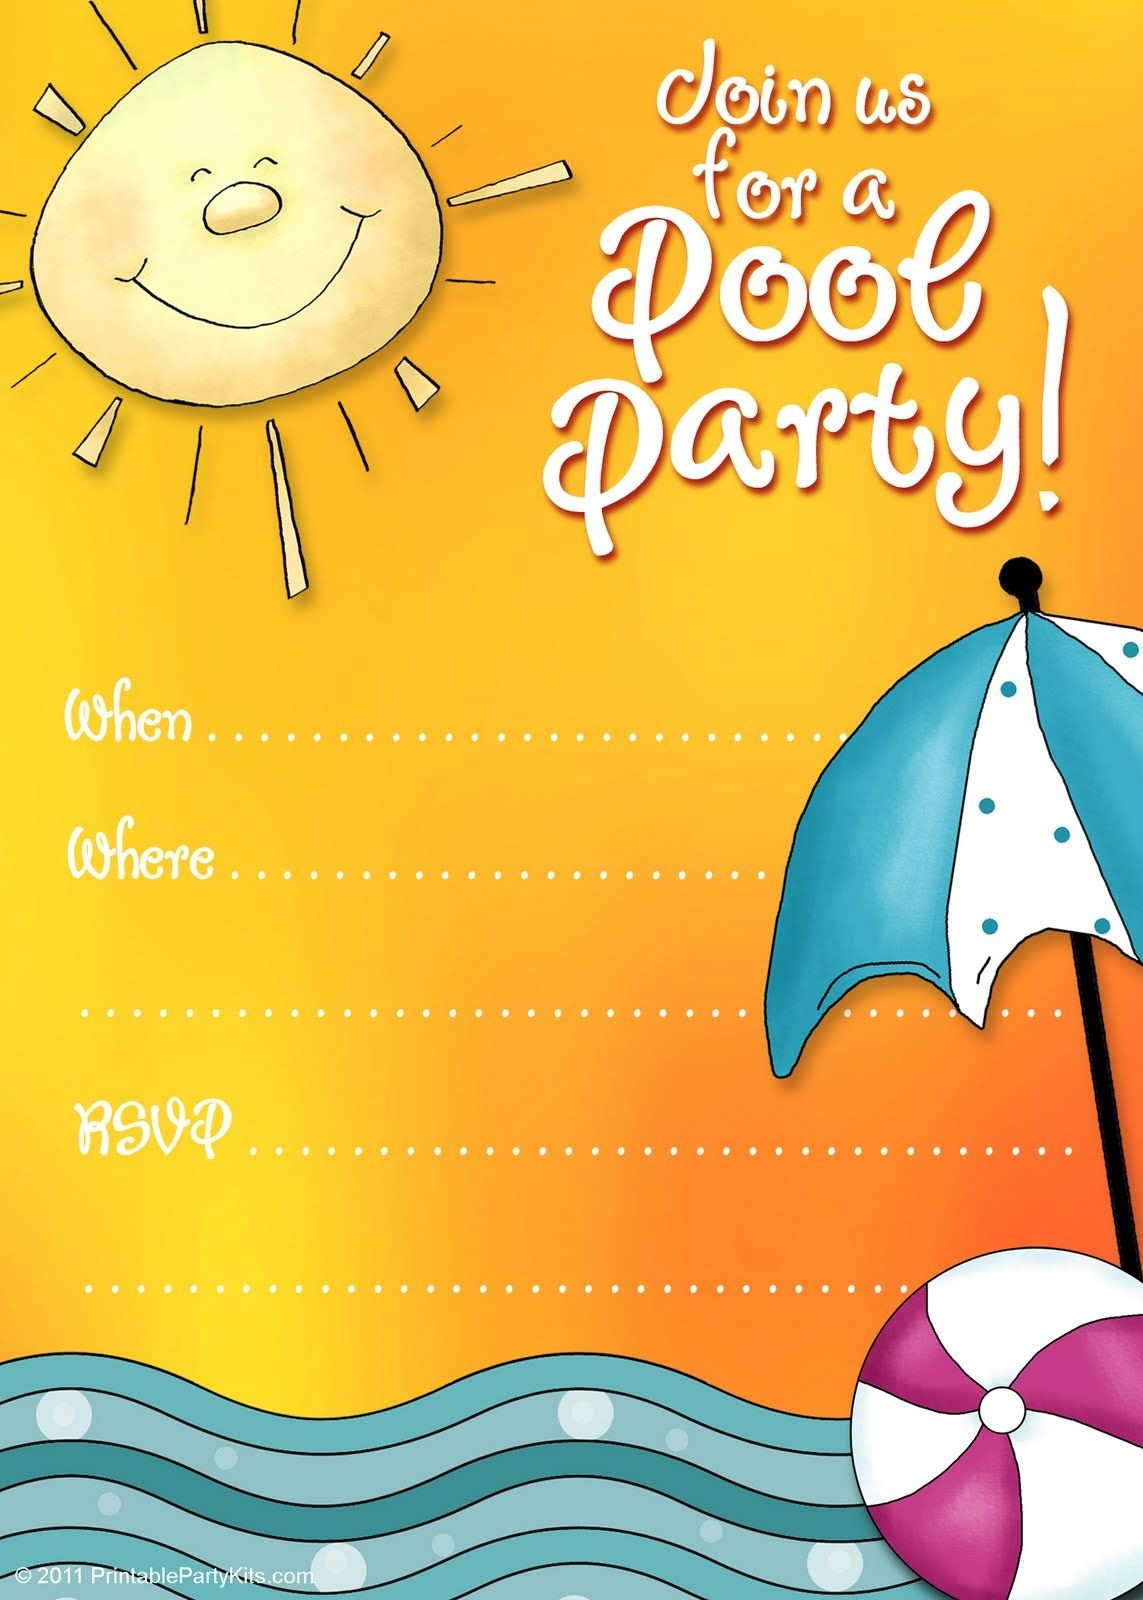 Free Printable Party Invitations: Summer Pool Party Invites | Adhd - Free Printable Pool Party Invitations